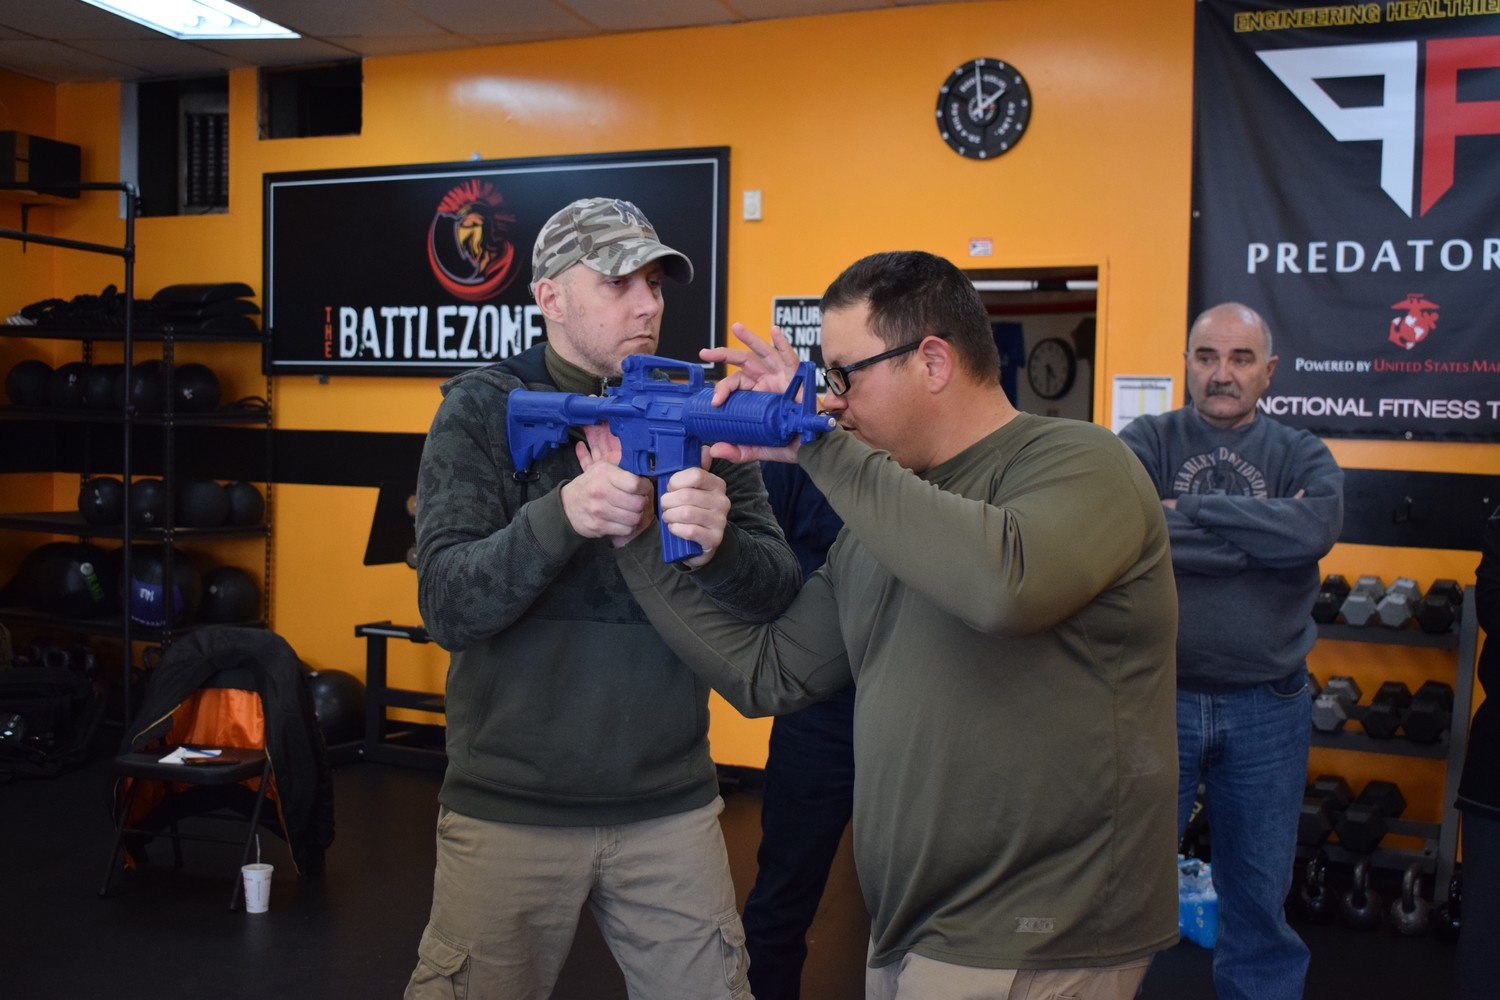 Franklin Square's Tommy DiLallo, left, and Defense Techniques Academy instructor Carlos Roman recently taught students at the Battle Zone Gym how to disarm an active shooter.